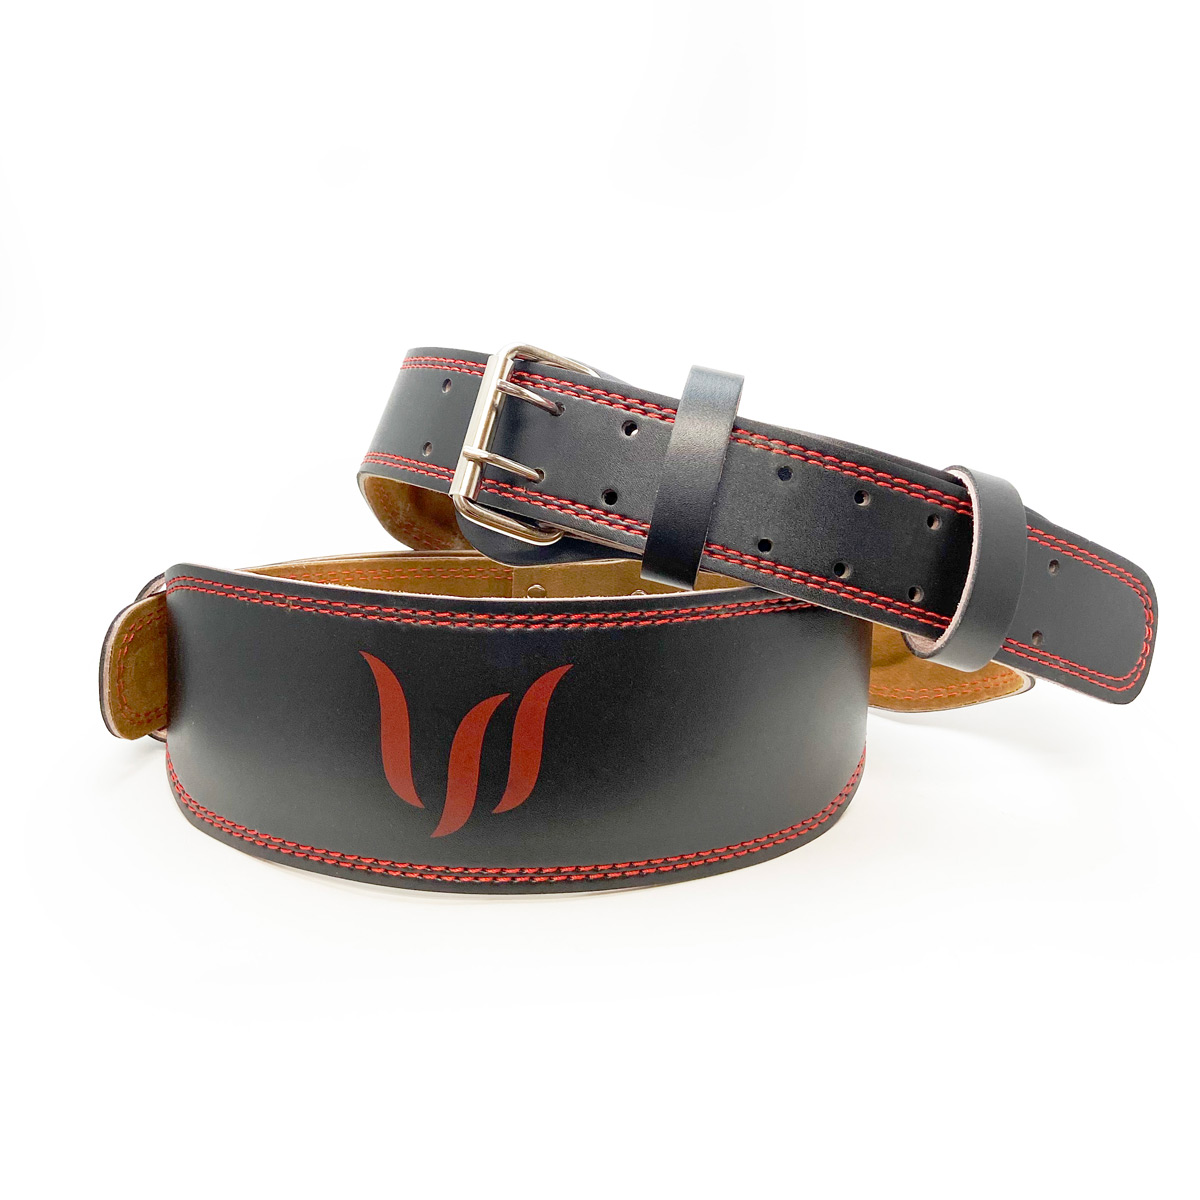 TRAINING BELT